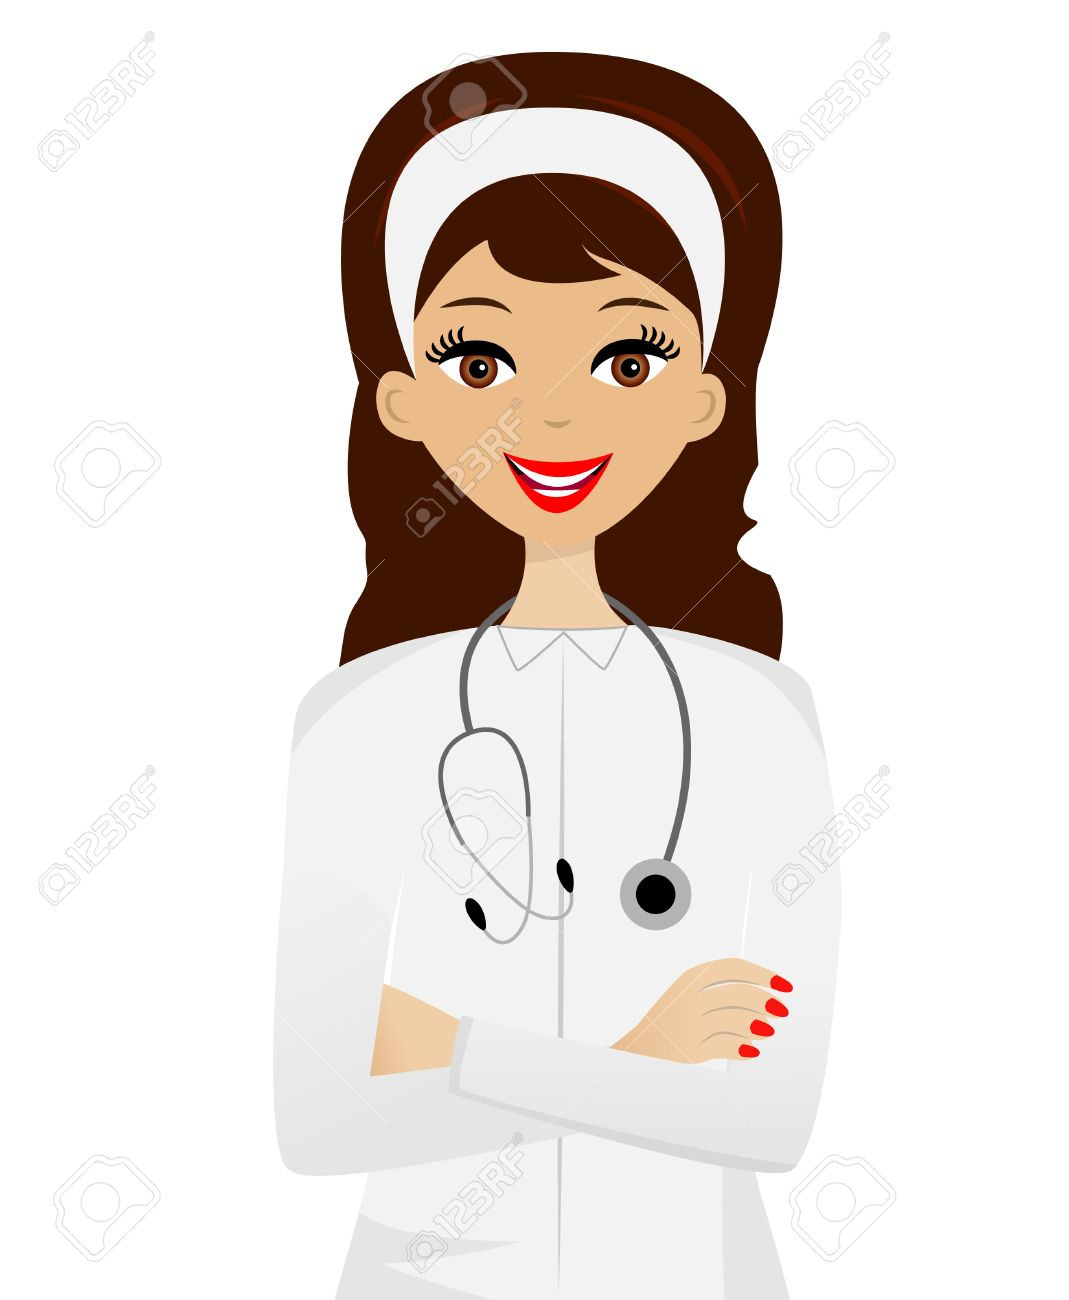 60 Doctor clipart female doctor for free download on Premium.